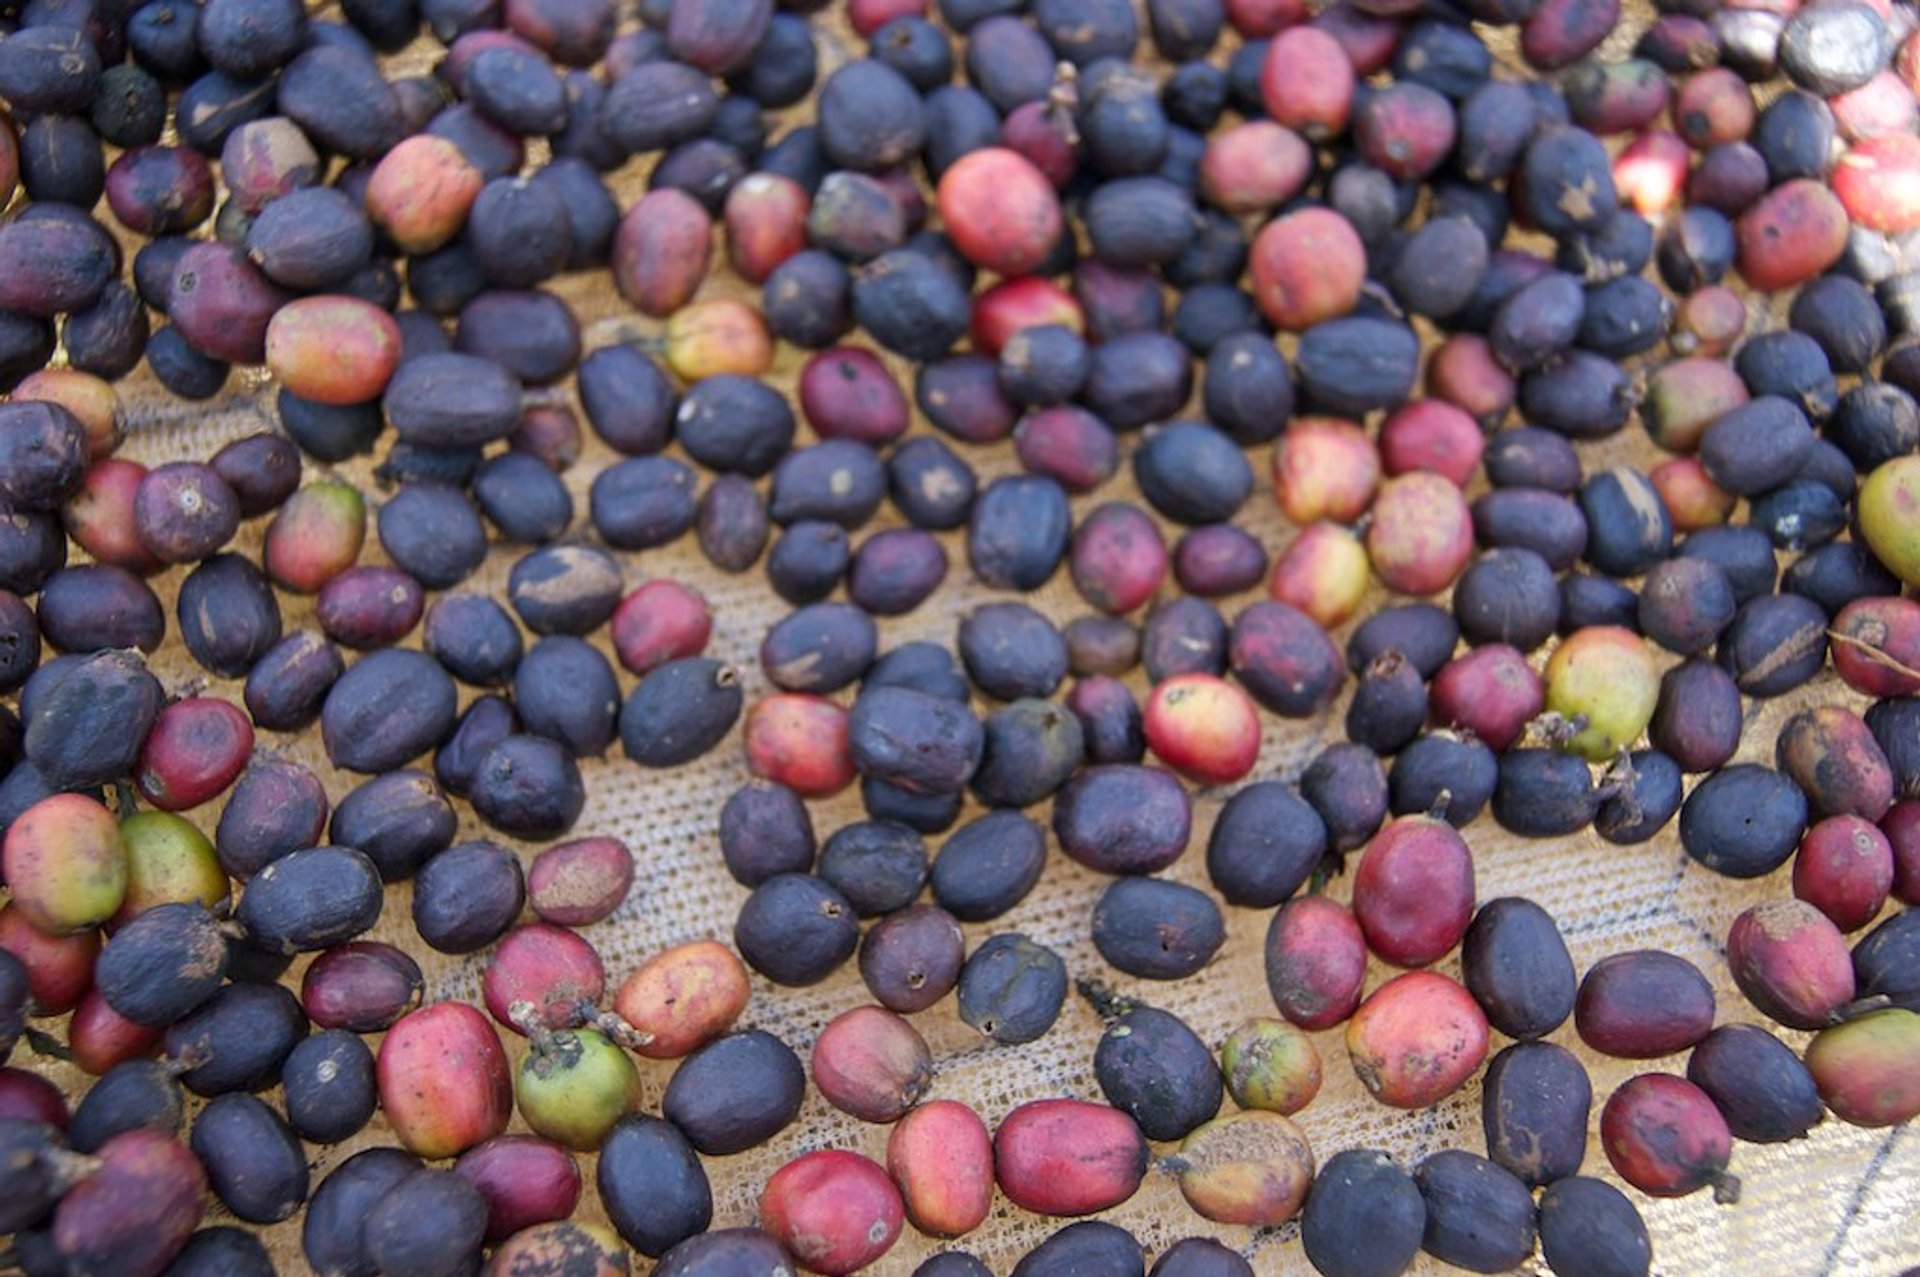 Coffee Harvest in Kenya 2019 - Best Time